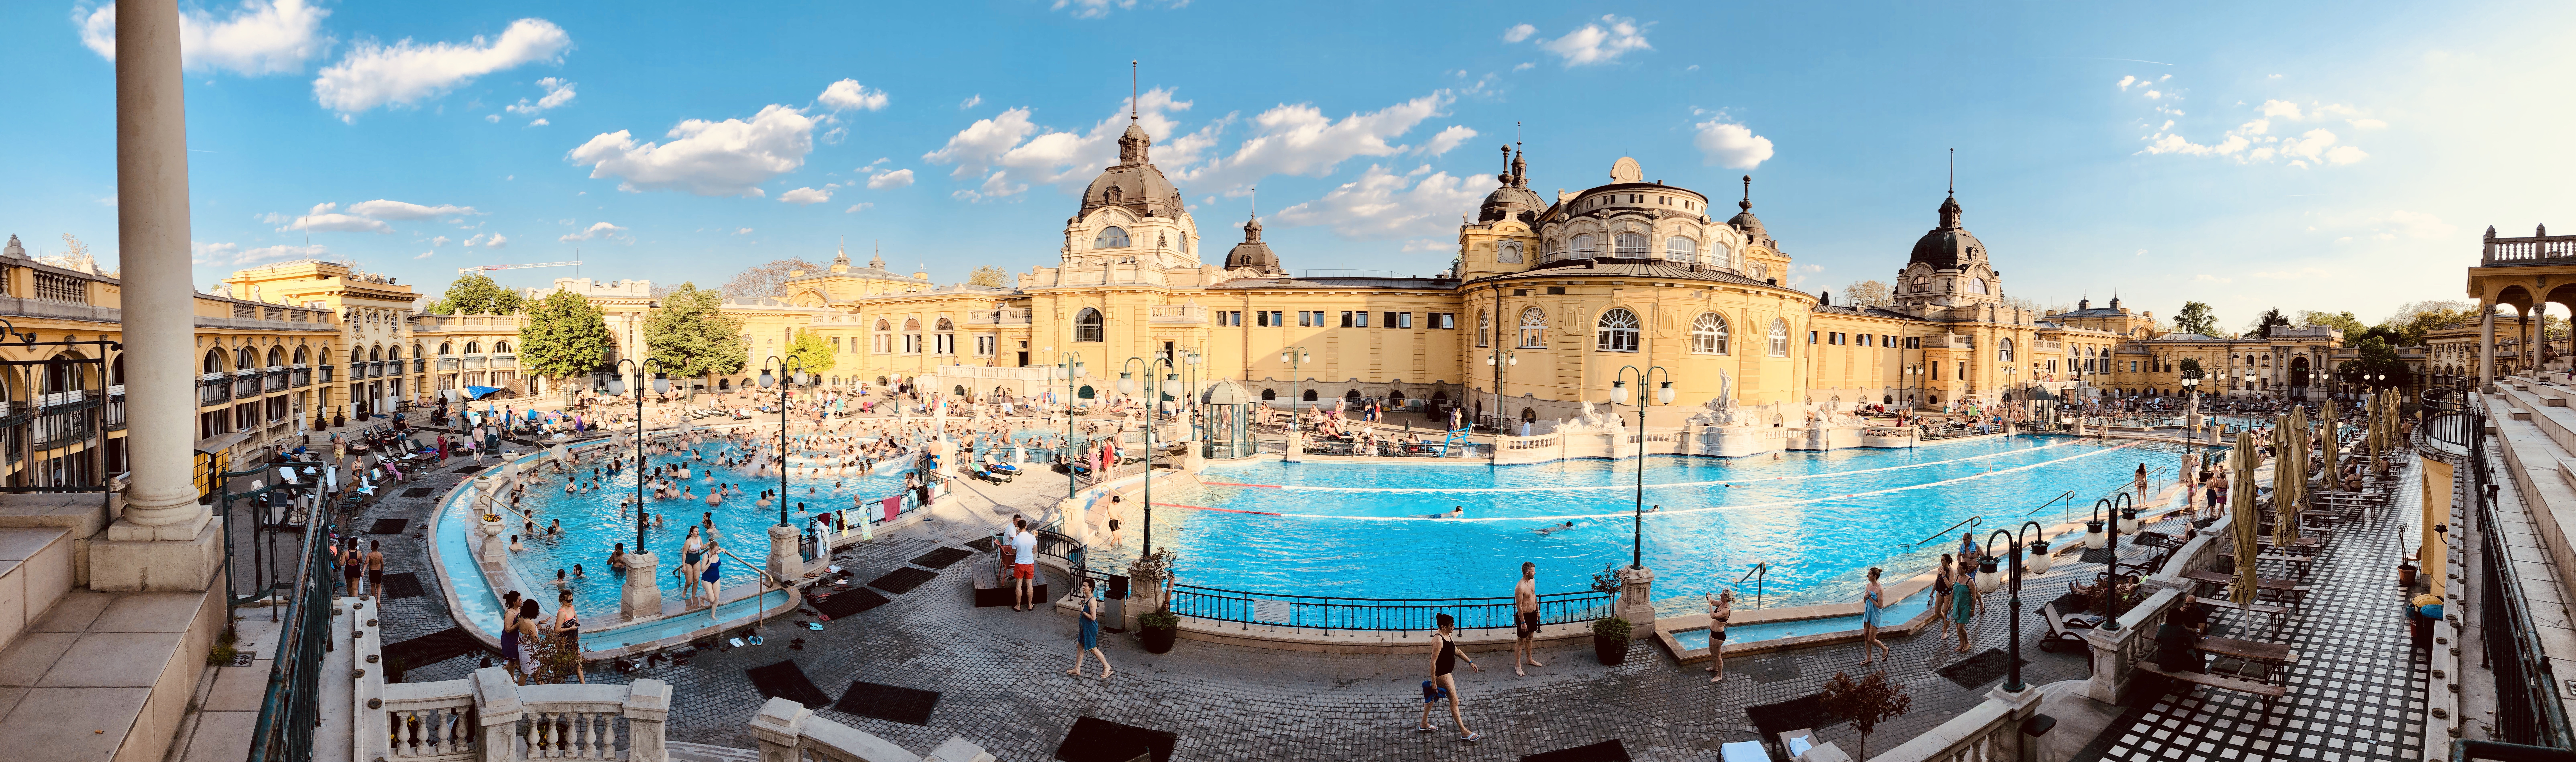 Szechenyi Bath is one of the biggest natural hot spring spa baths in Europe. This bath has a history of over 100 years and millions of bathers have have enjoyed the warm medicinal waters. This is famous for its summer night sparties (spa parties), most grand of which is on first weekend of August.  http://www.bathsbudapest.com/szechenyi-bath https://spartybooking.com/events-category/events/